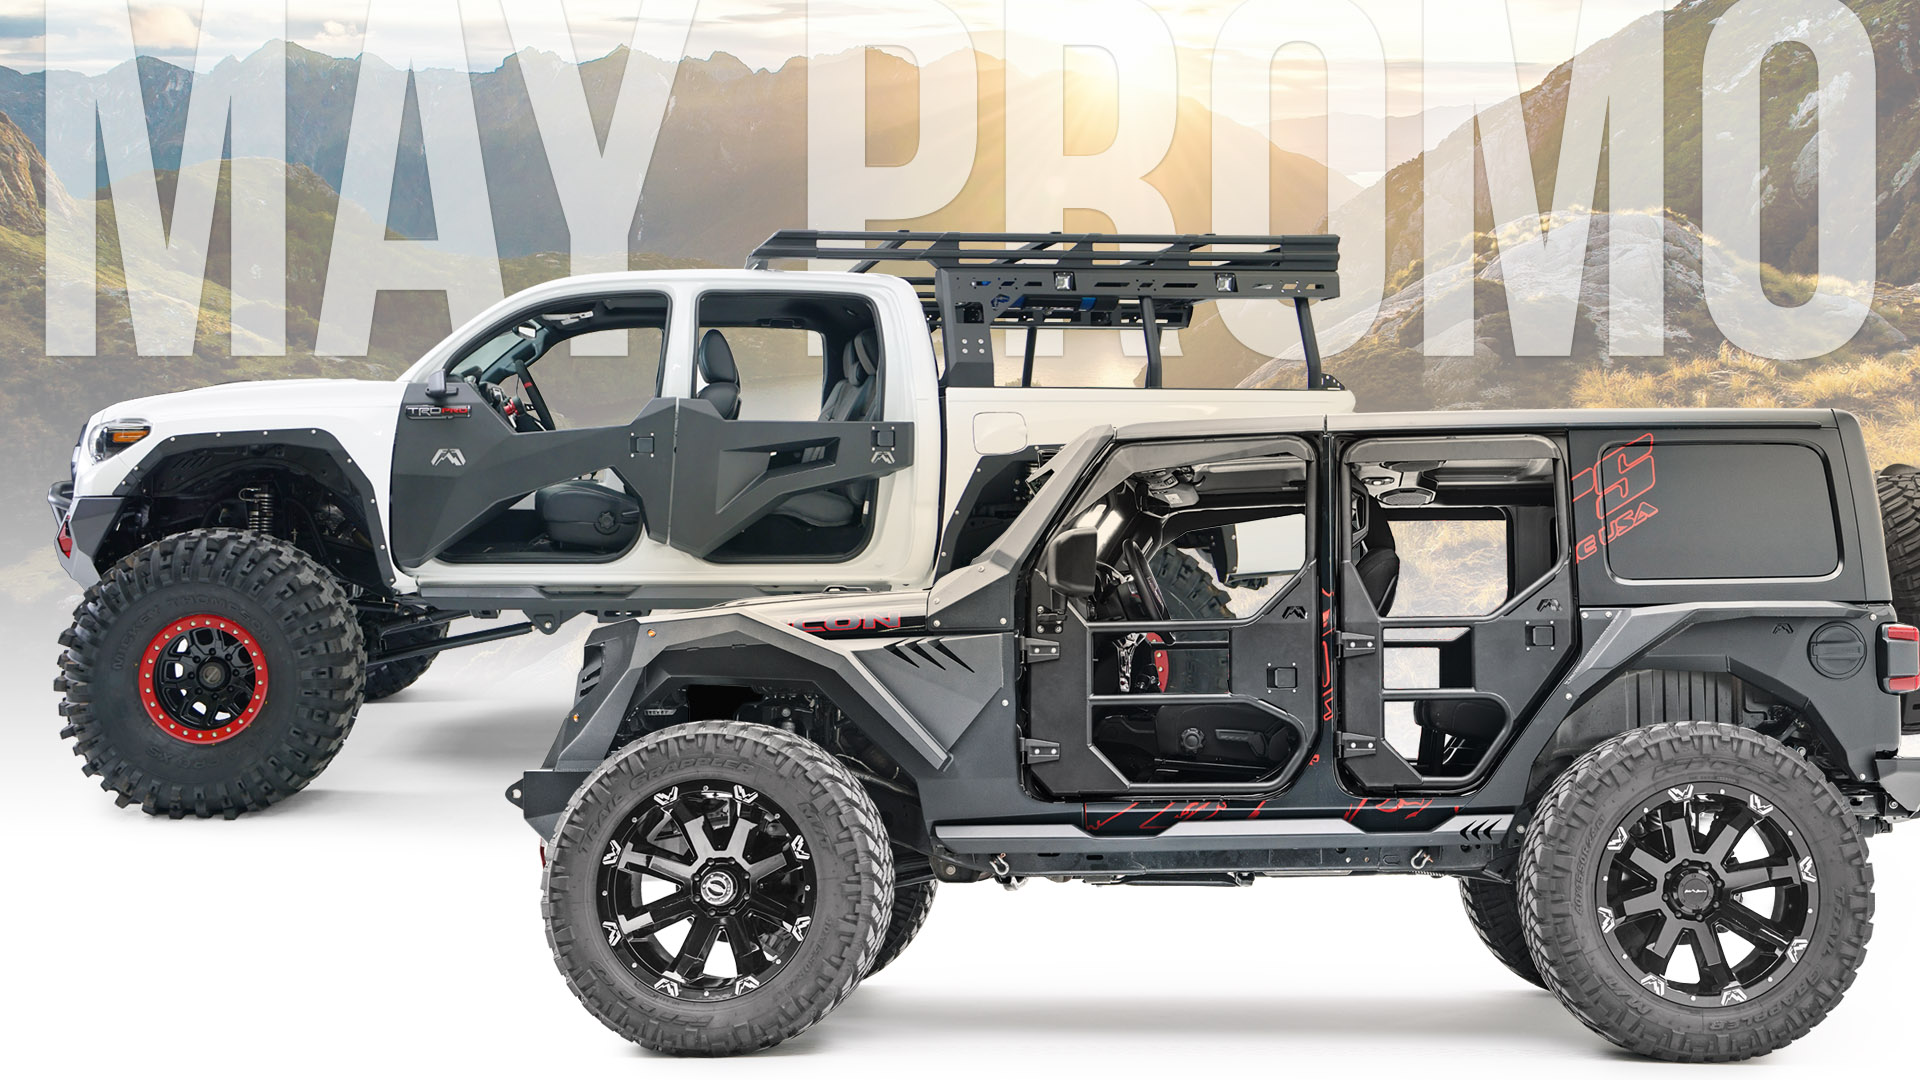 Toyota Tacoma and Jeep Trail Doors